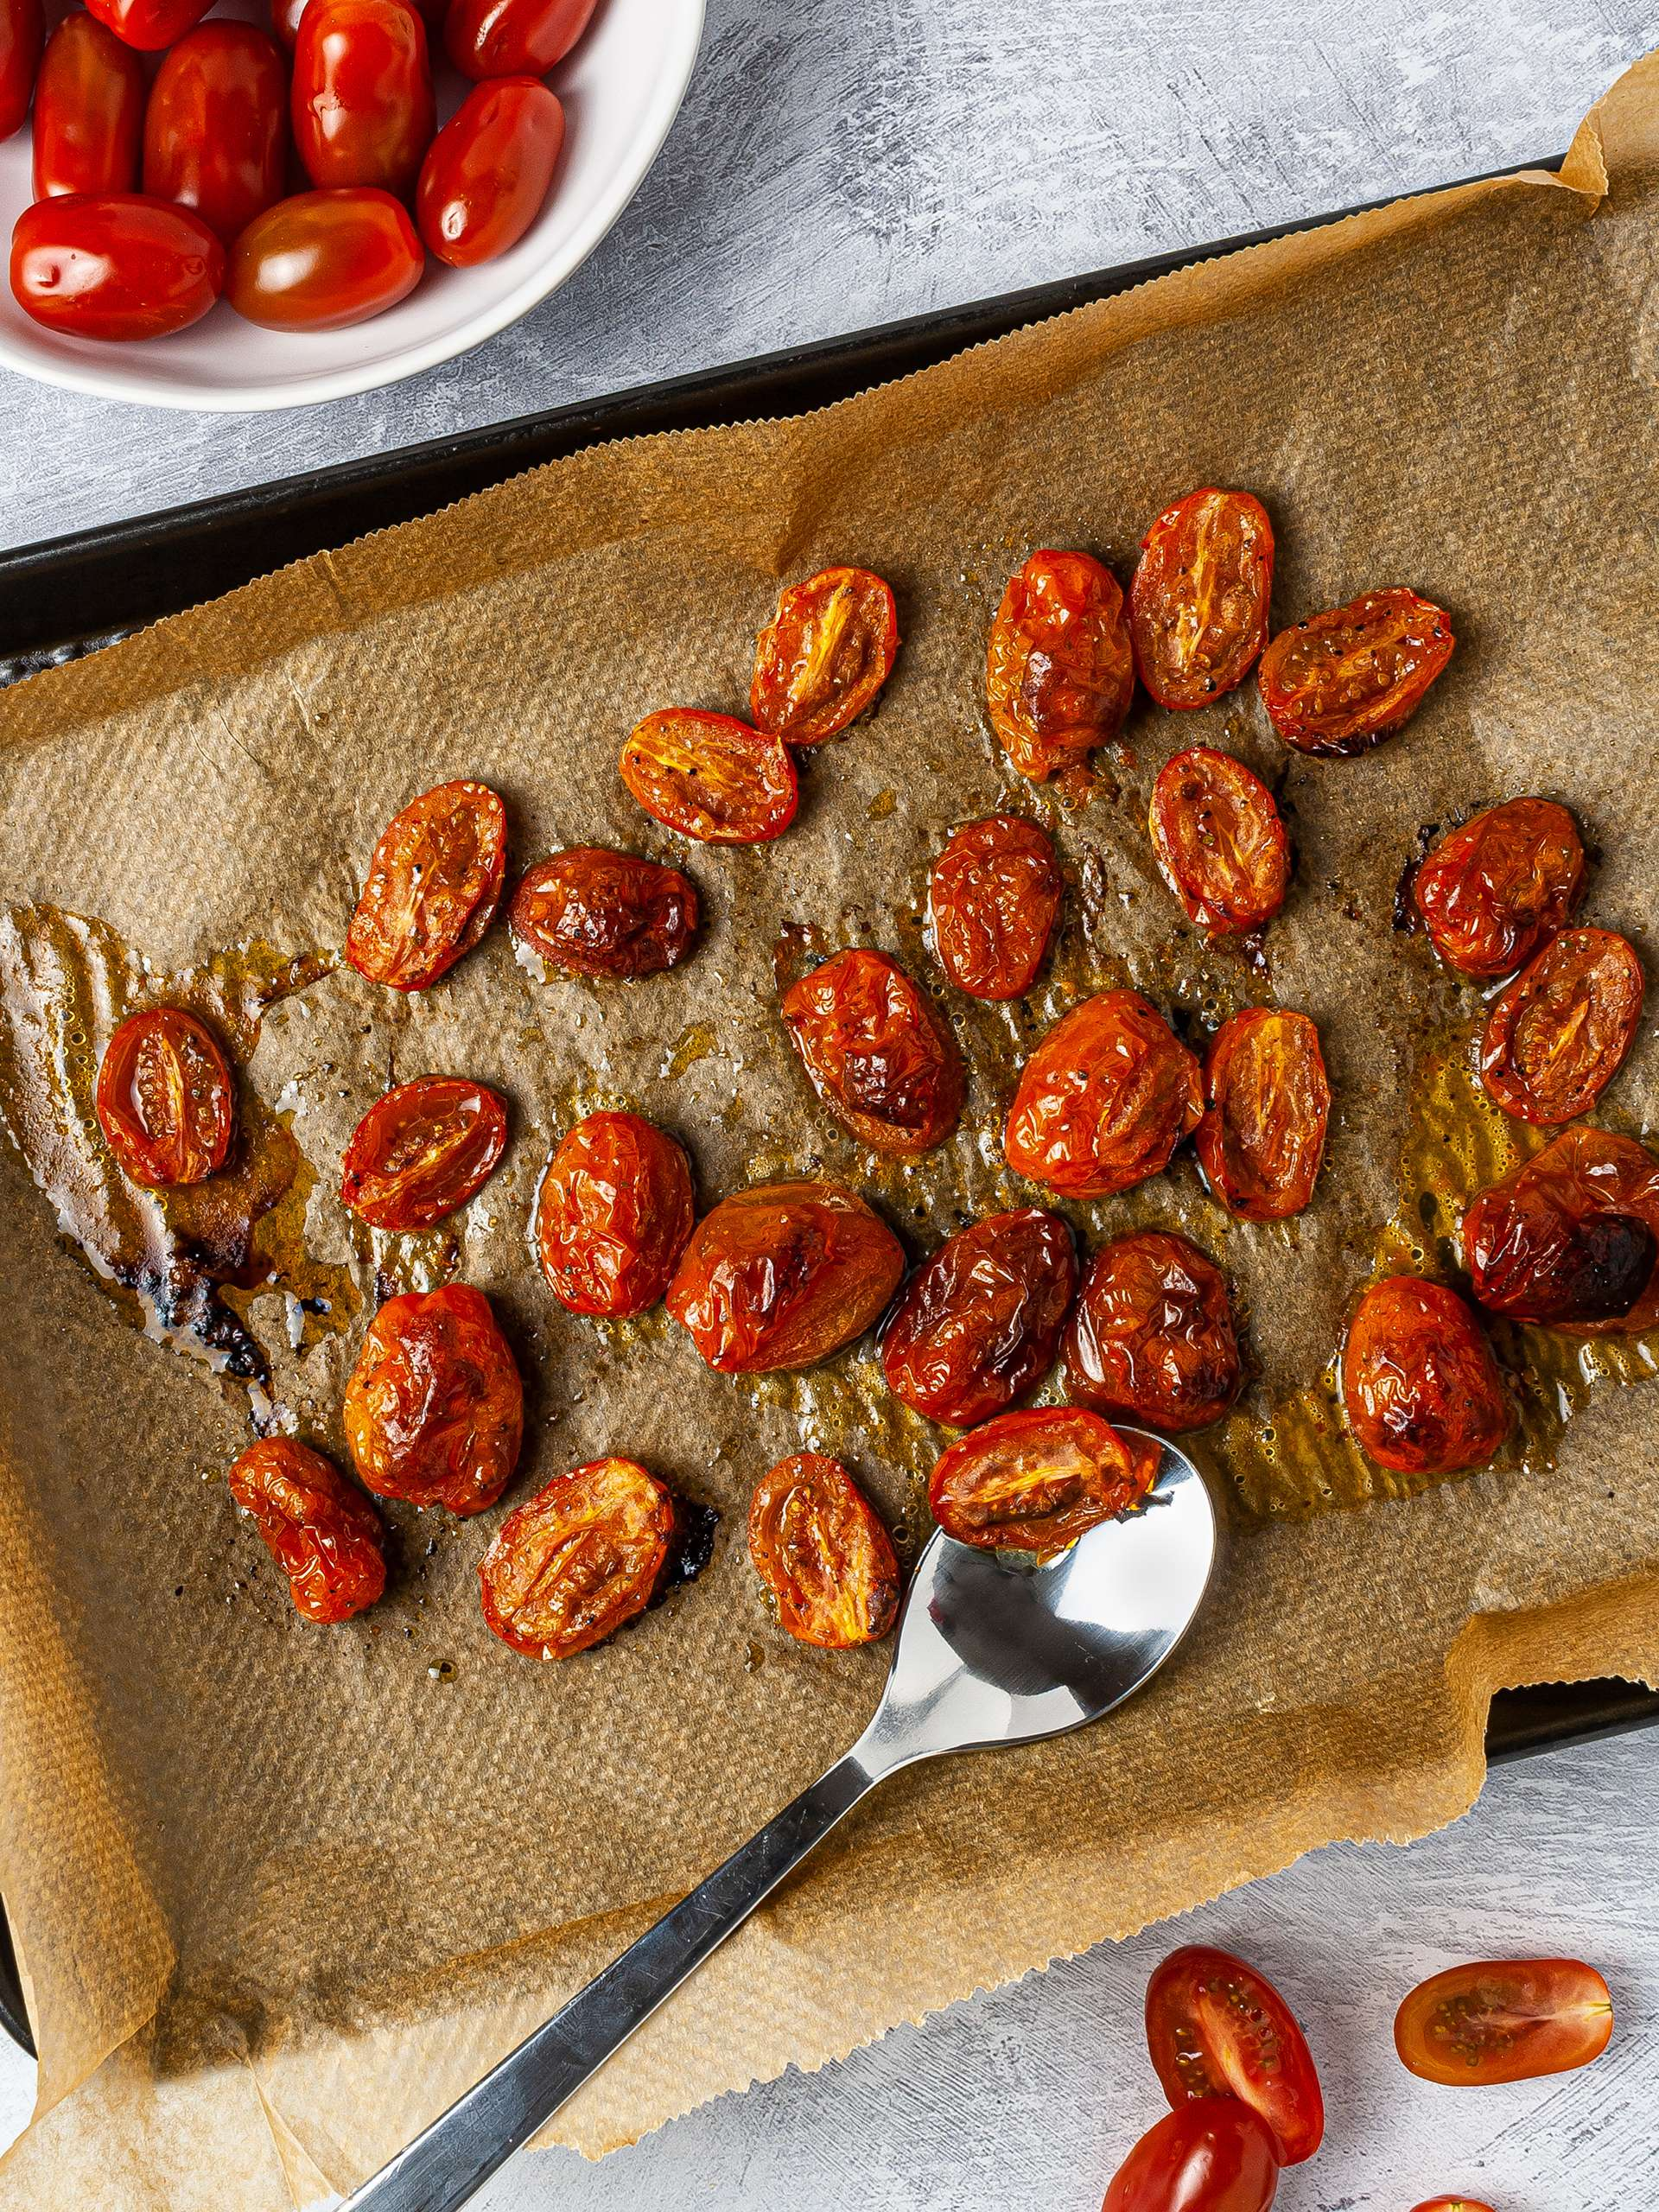 Whole and halved cherry tomatoes roasted with olive oil over a baking tray